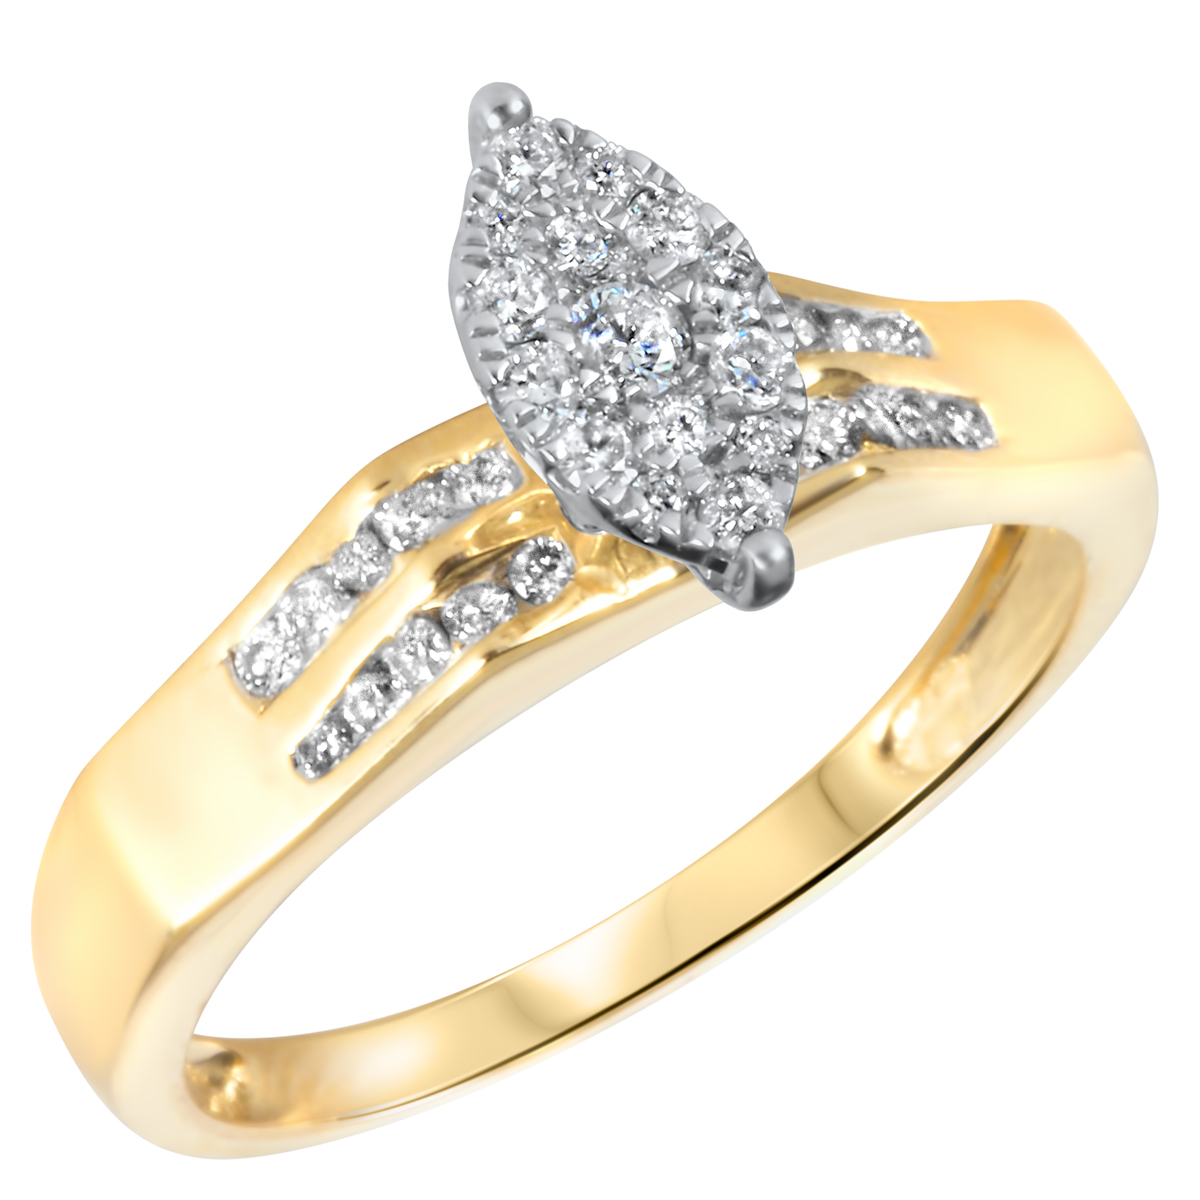 2 3 CT T W Diamond Women s Bridal Wedding Ring Set 14K Yellow Gold